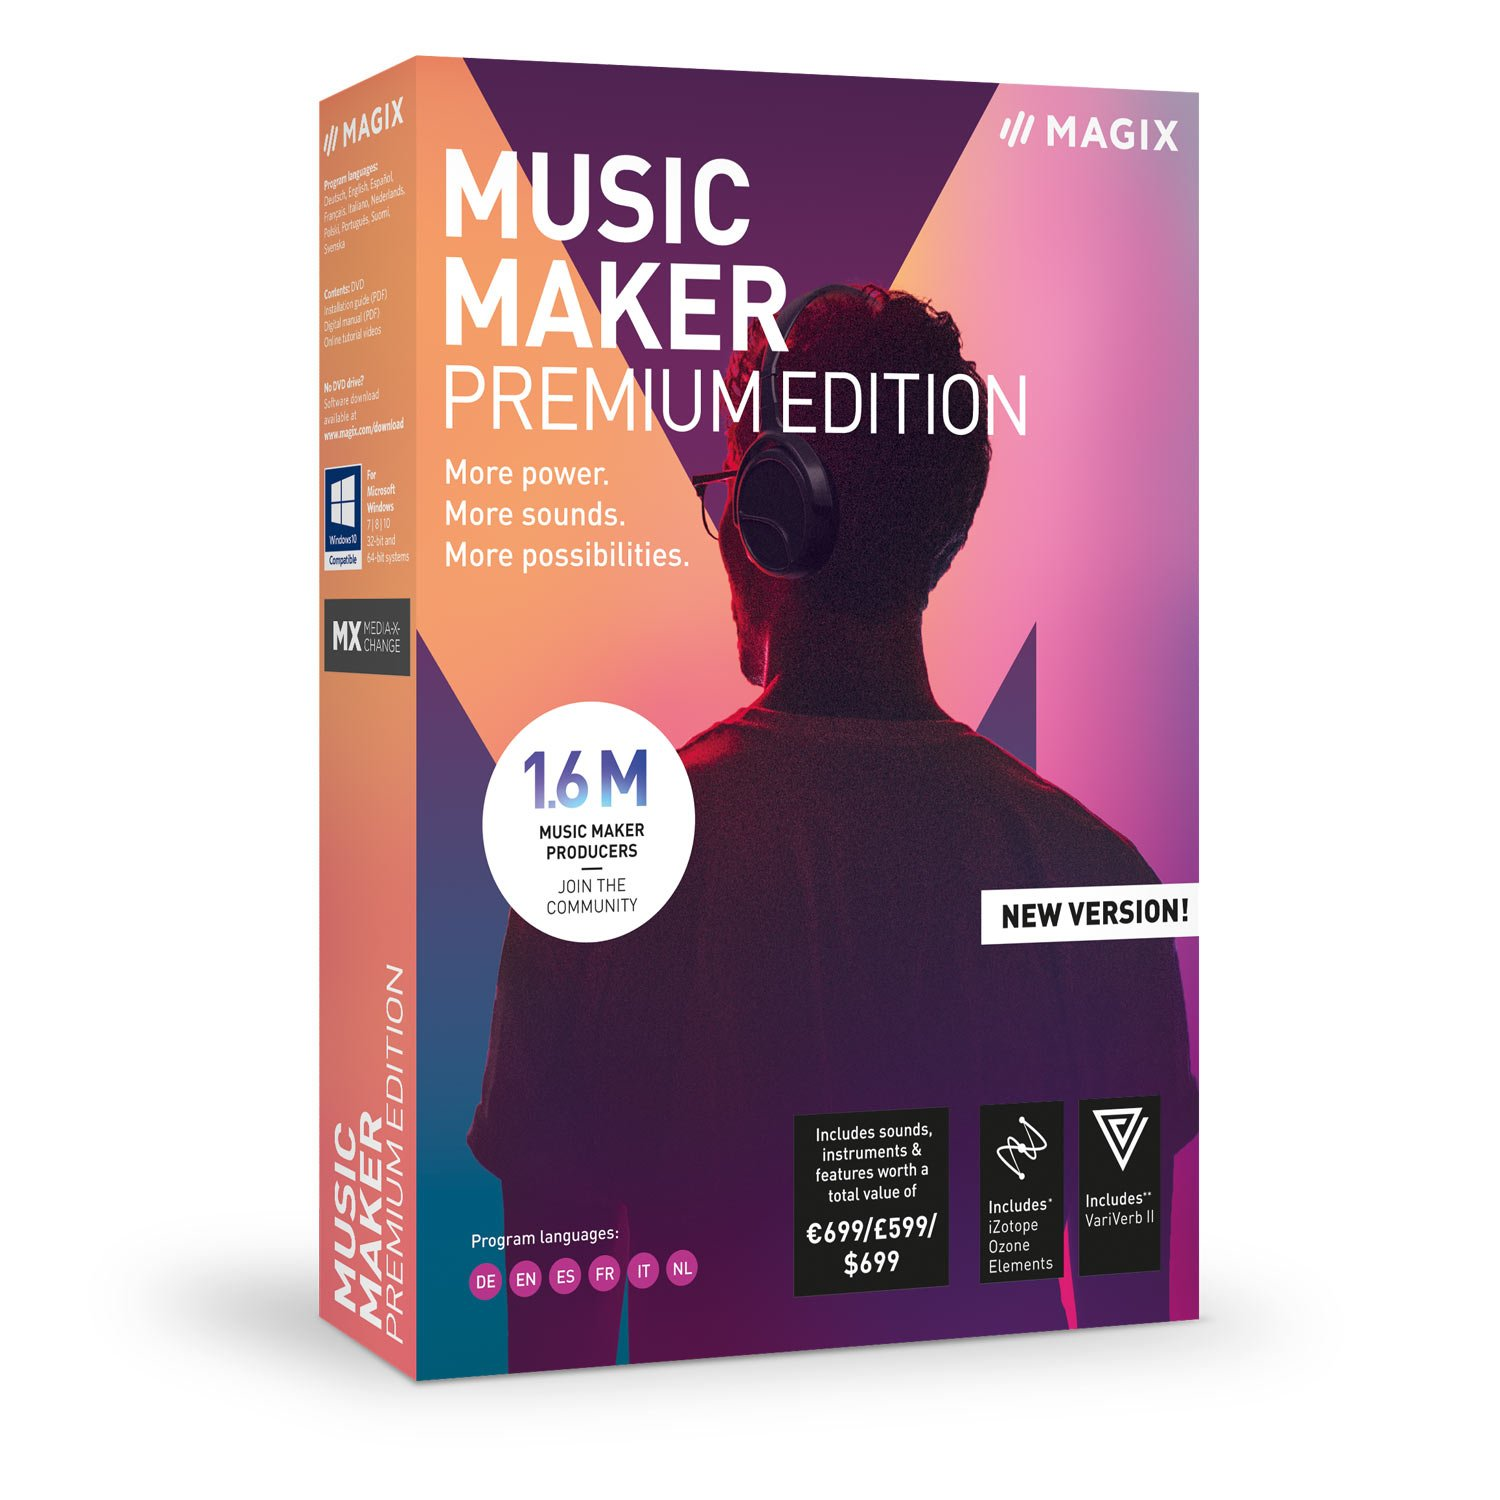 MAGIX Music Maker - 2019 Premium Edition - MORE Power. MORE Loops. MORE Creative Possibilities by MAGIX